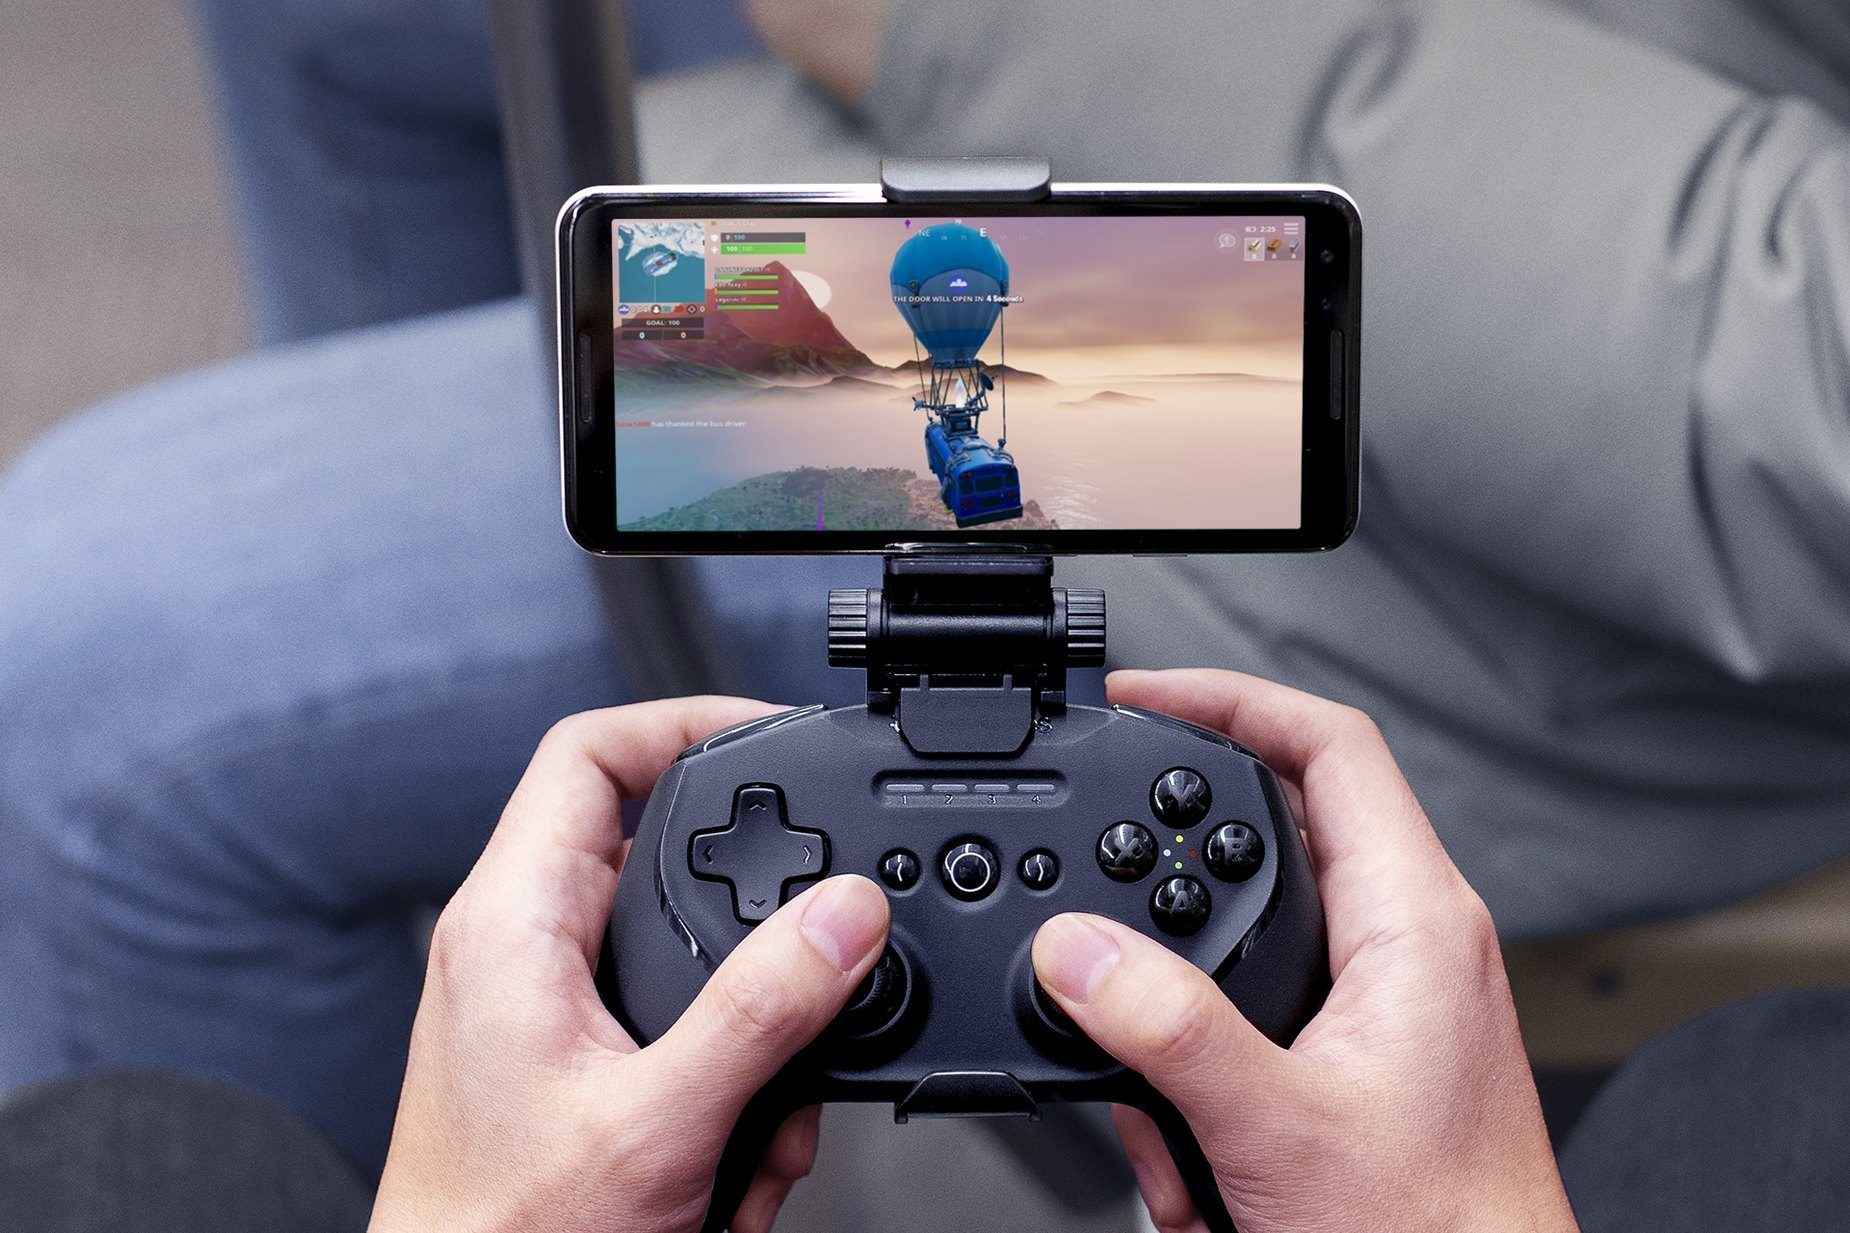 Hands holding Stratus Duo Controller with SmartGrip attachment for phone playing Fortnite mobile